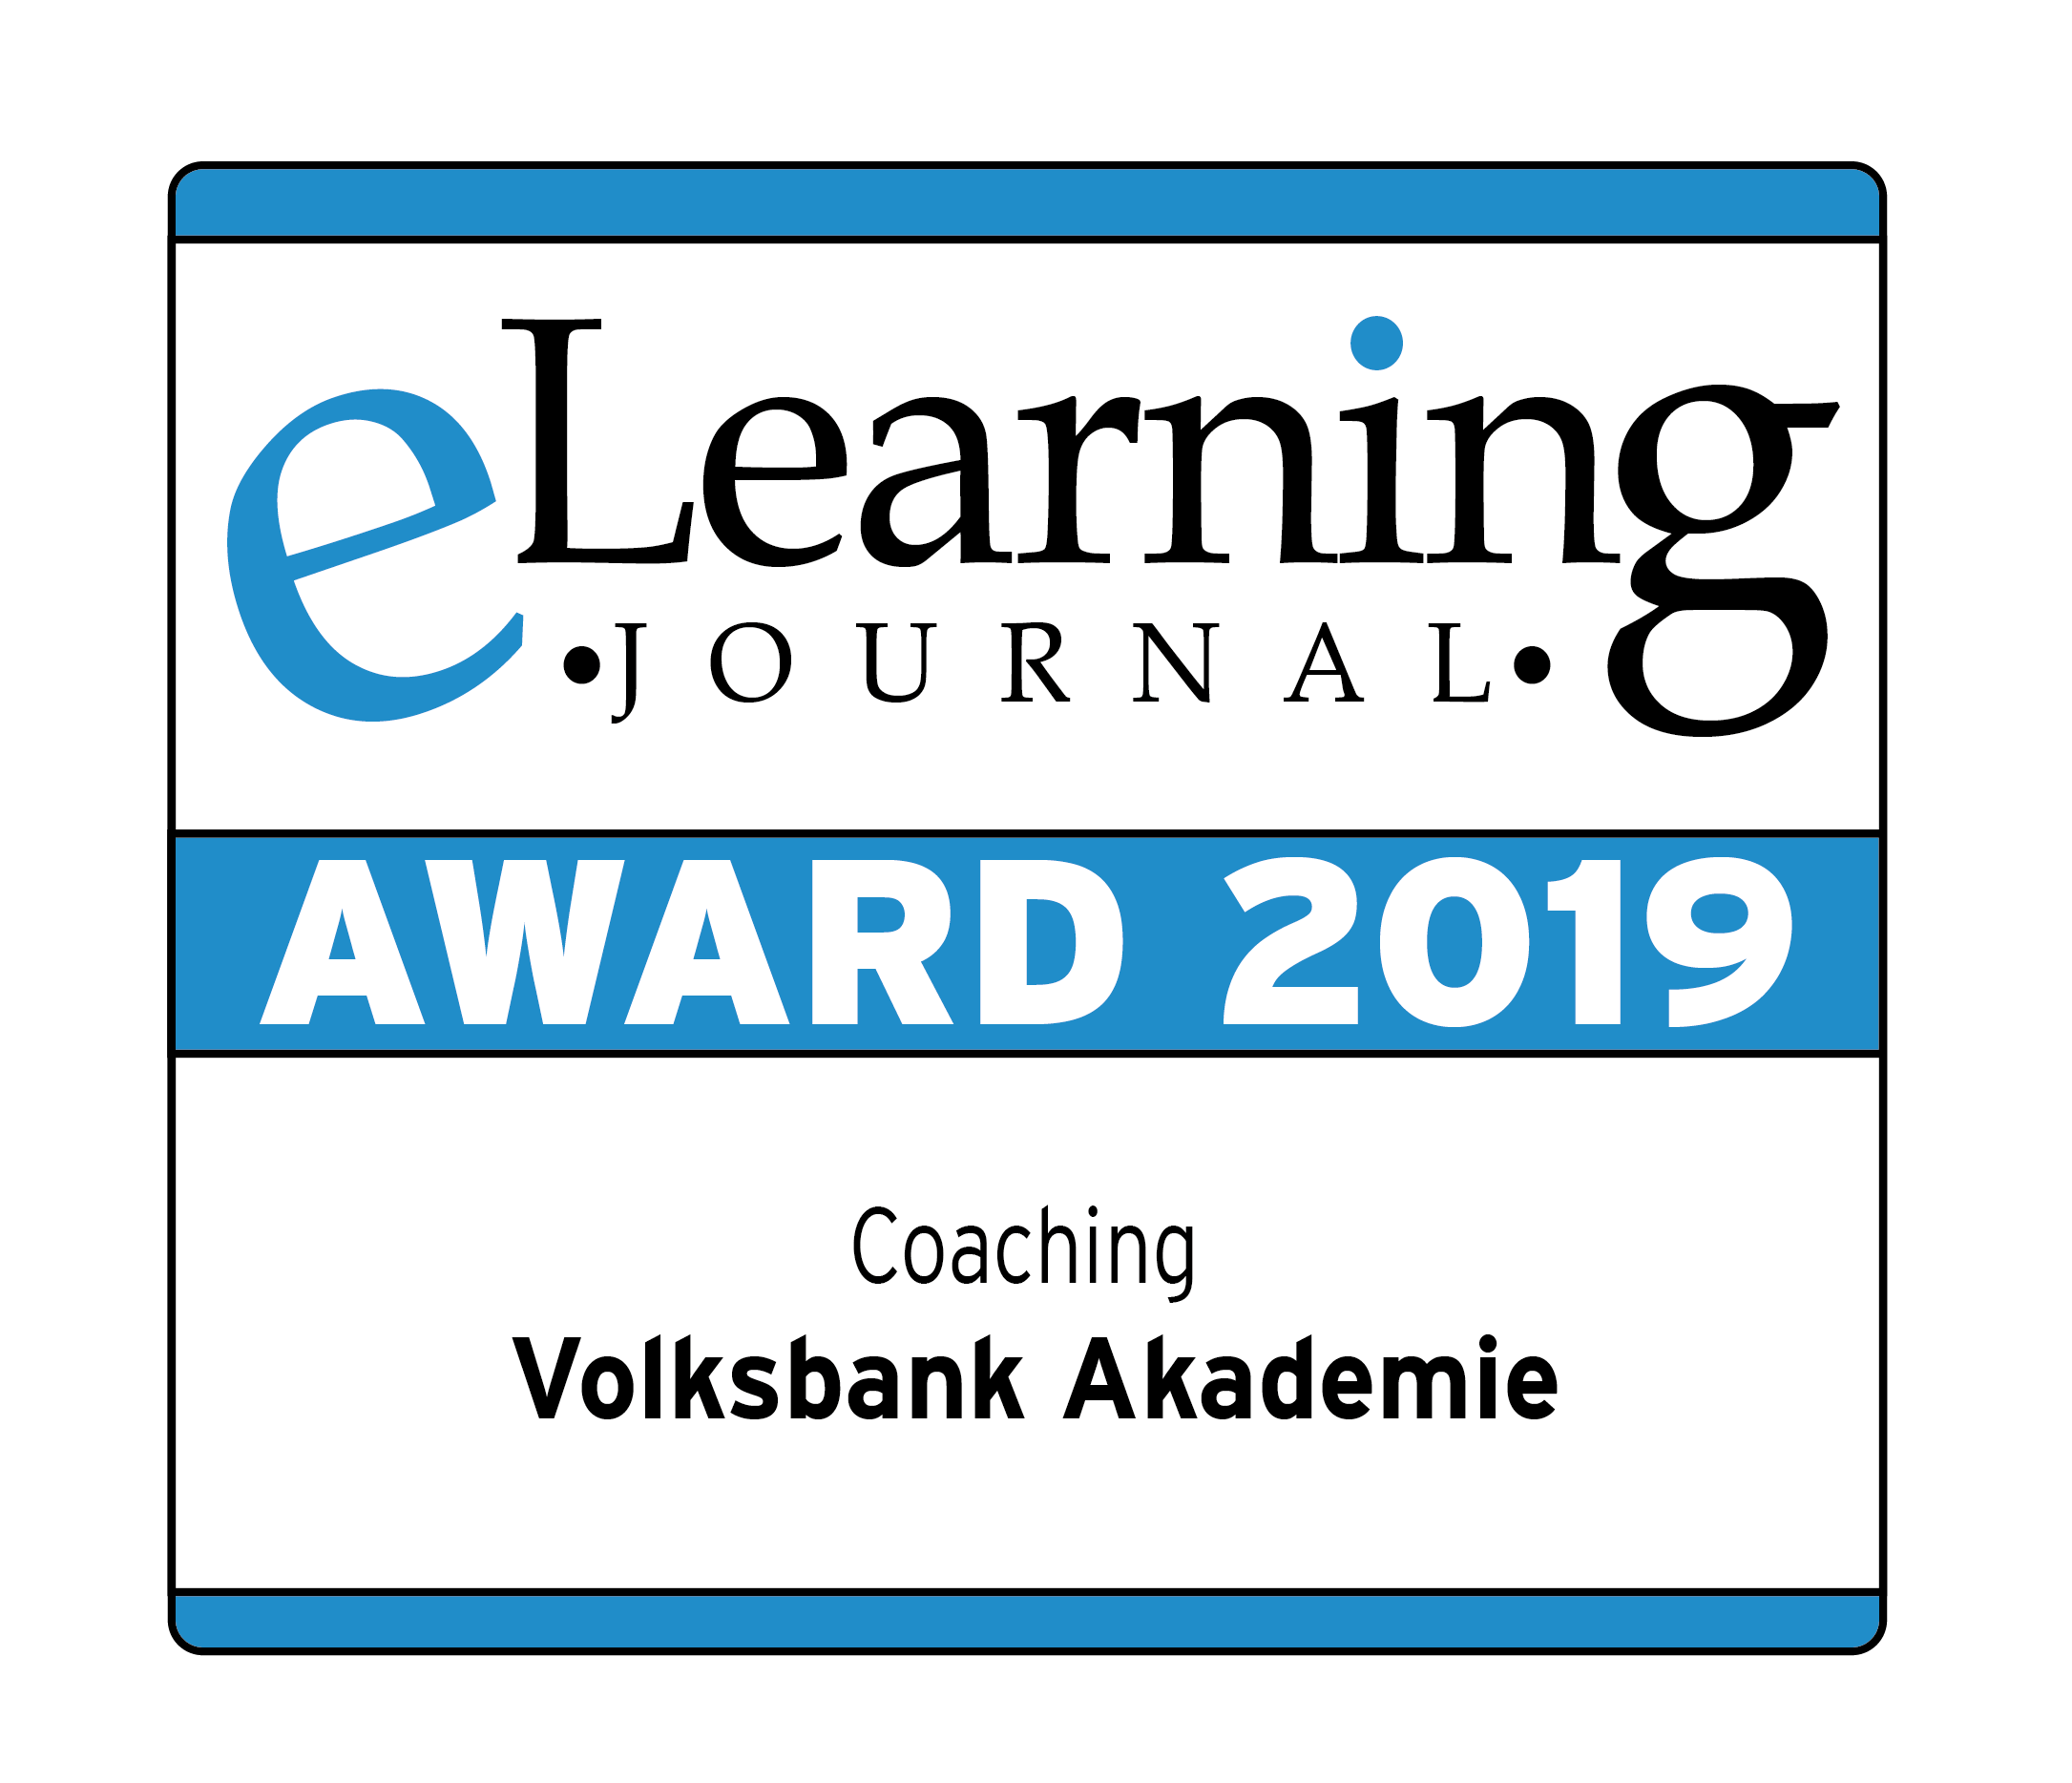 eLJ_AWARD2019_Coaching_VolksbankAkademie.png